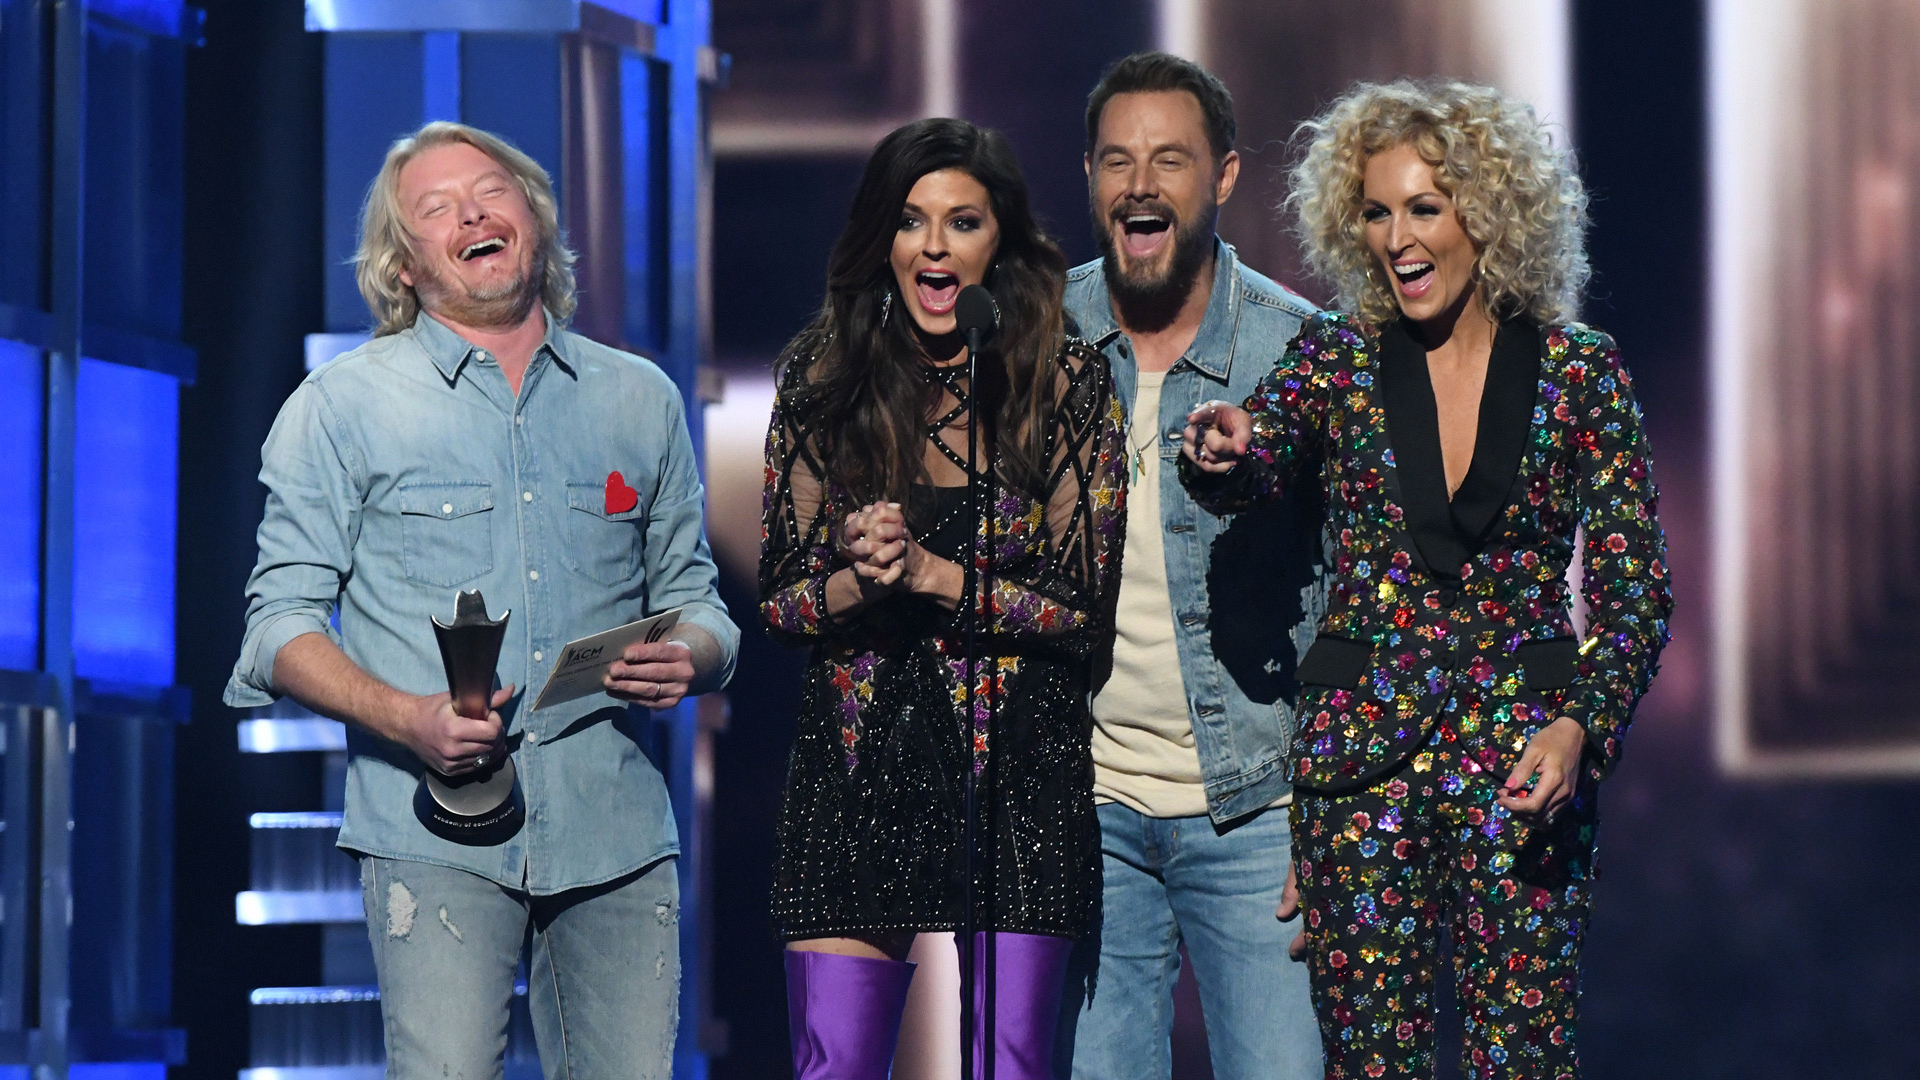 Little Big Town wins Vocal Group Of The Year at the 52nd ACM Awards